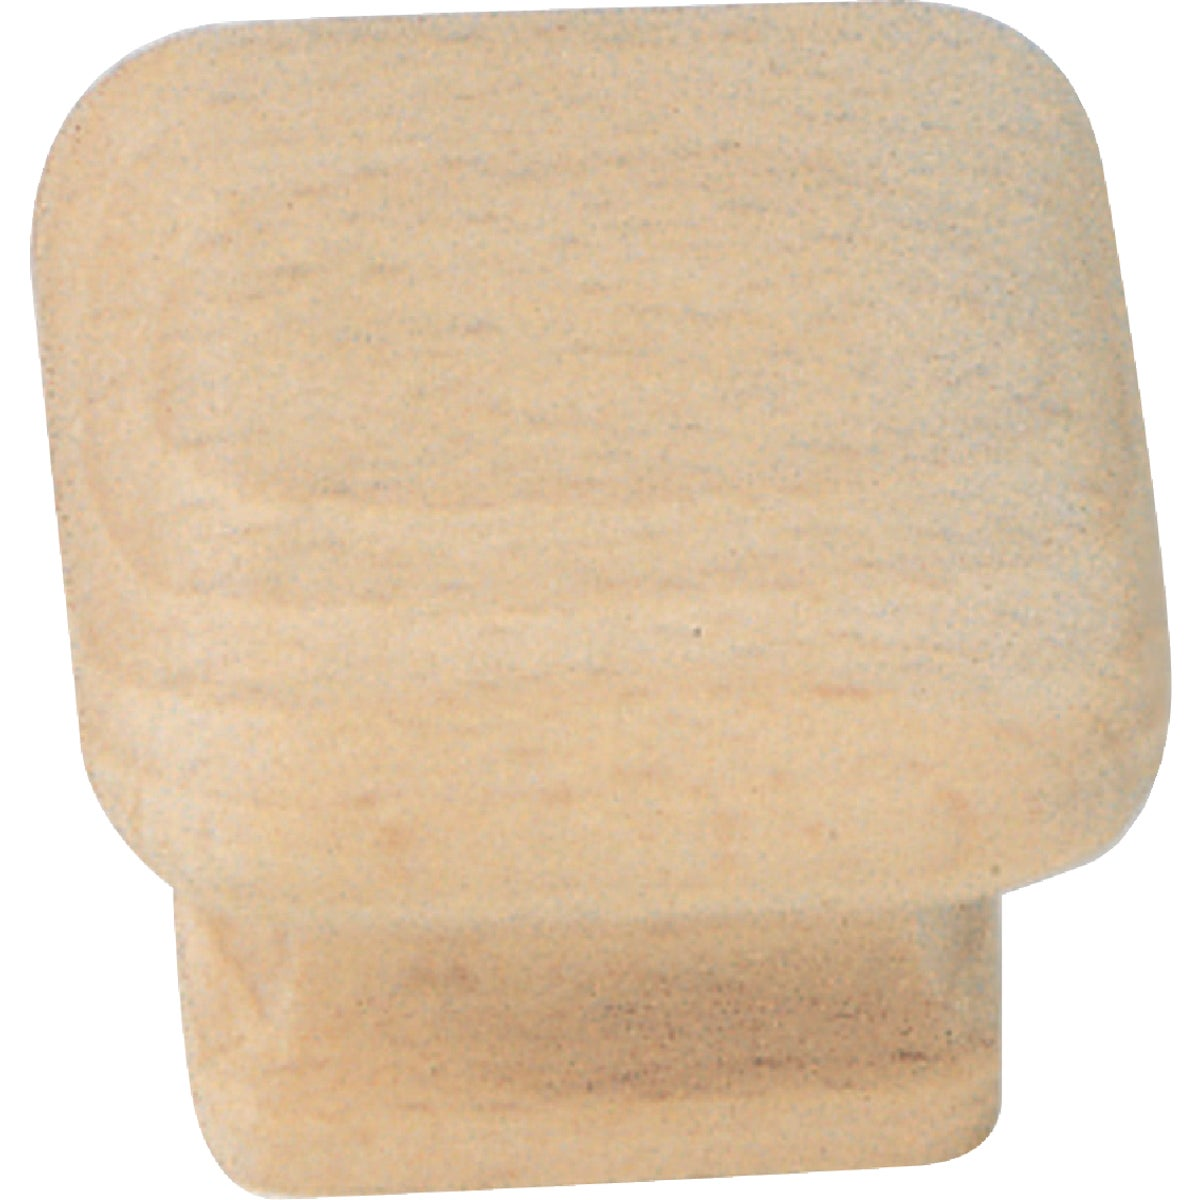 "1-1/2"" WOOD SQUARE KNOB - 32301 by Laurey Co"